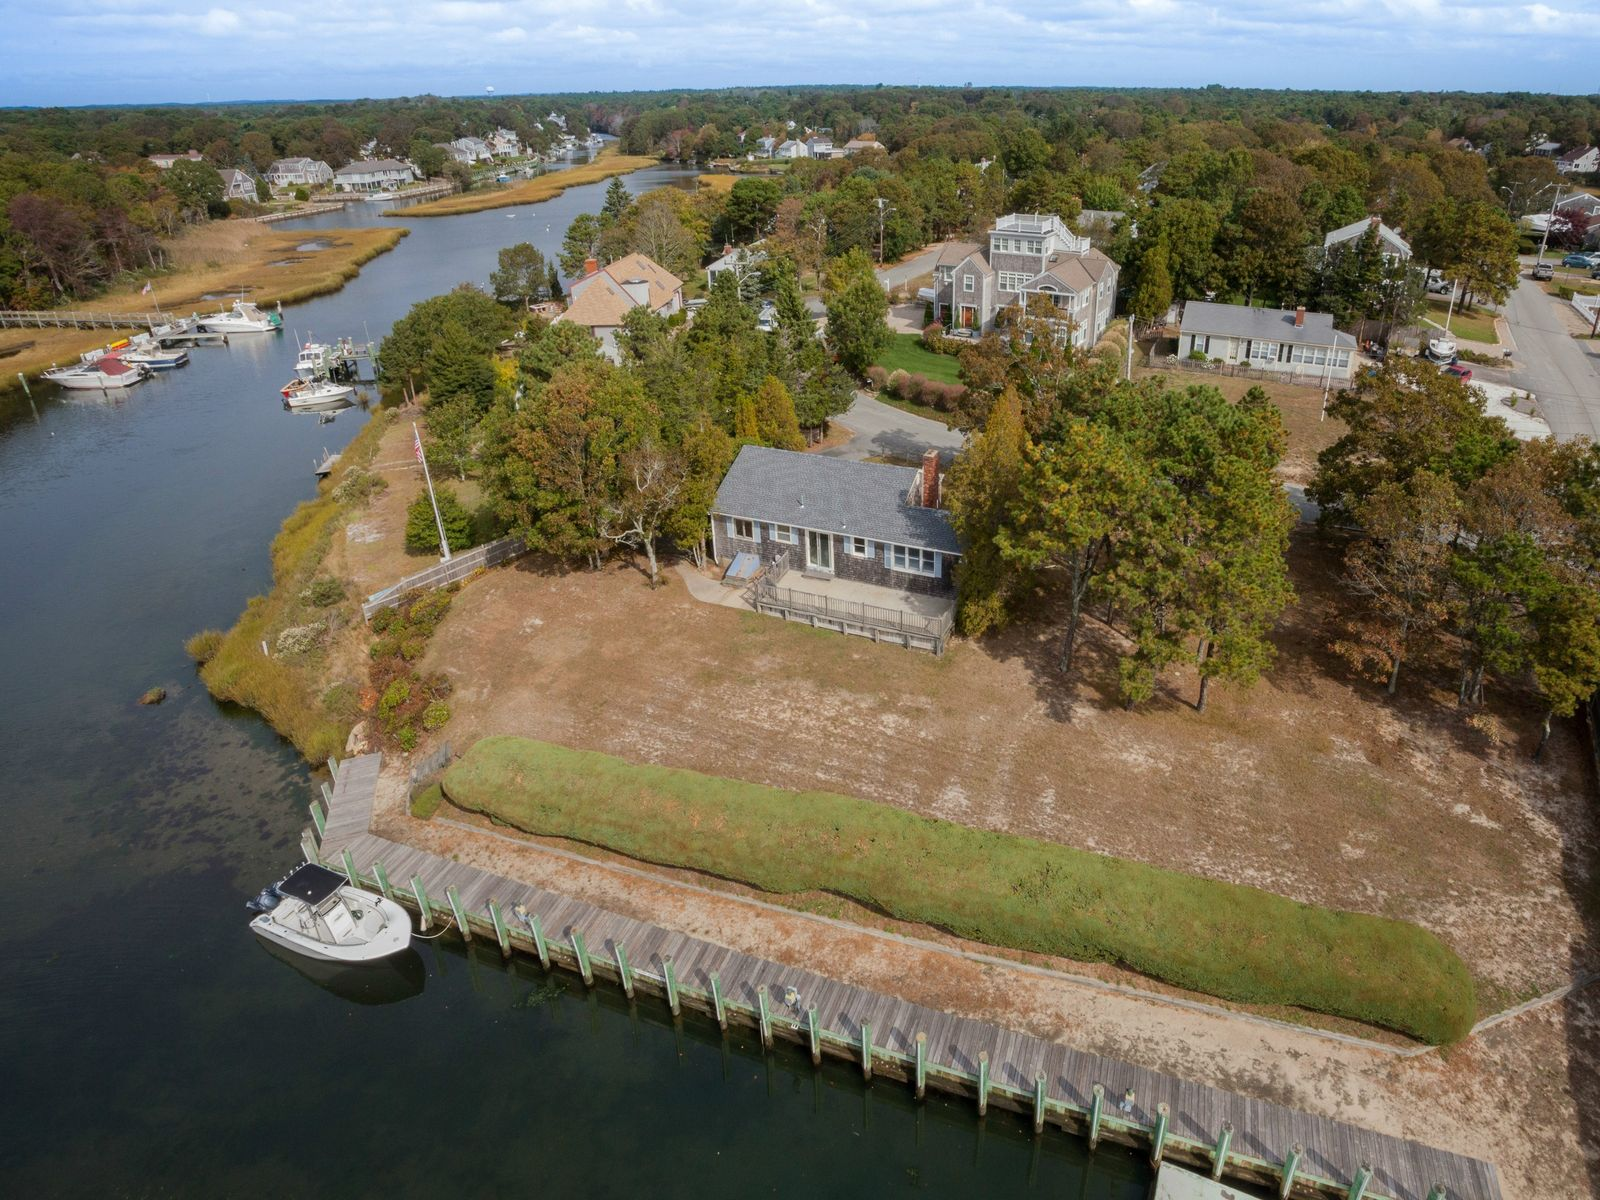 Waterfront Cottage with Deep Water Dock, East Falmouth MA Single Family Home - Cape Cod Real Estate